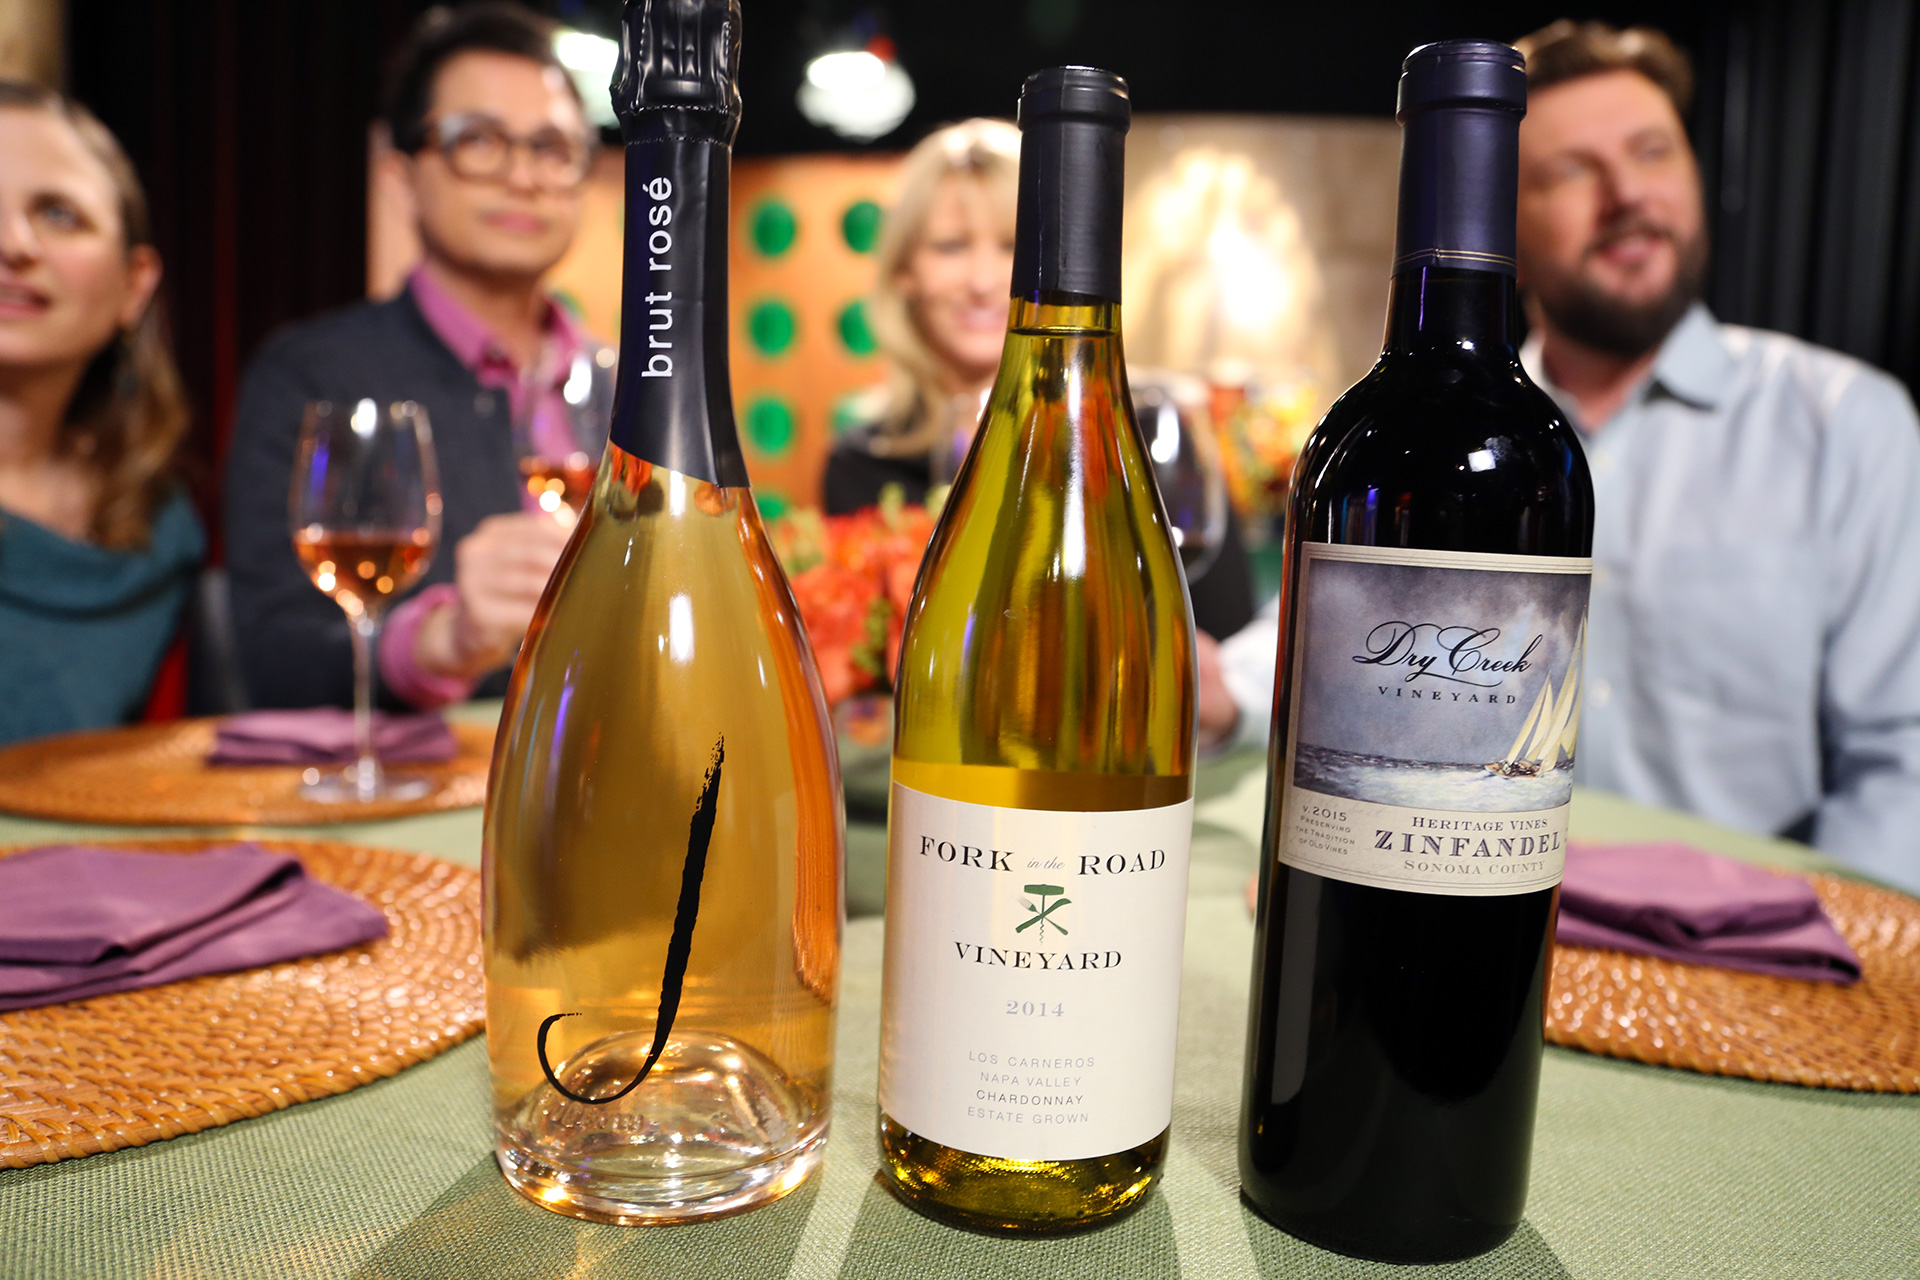 Wine that guests drank on the set of season 13 episode 9.